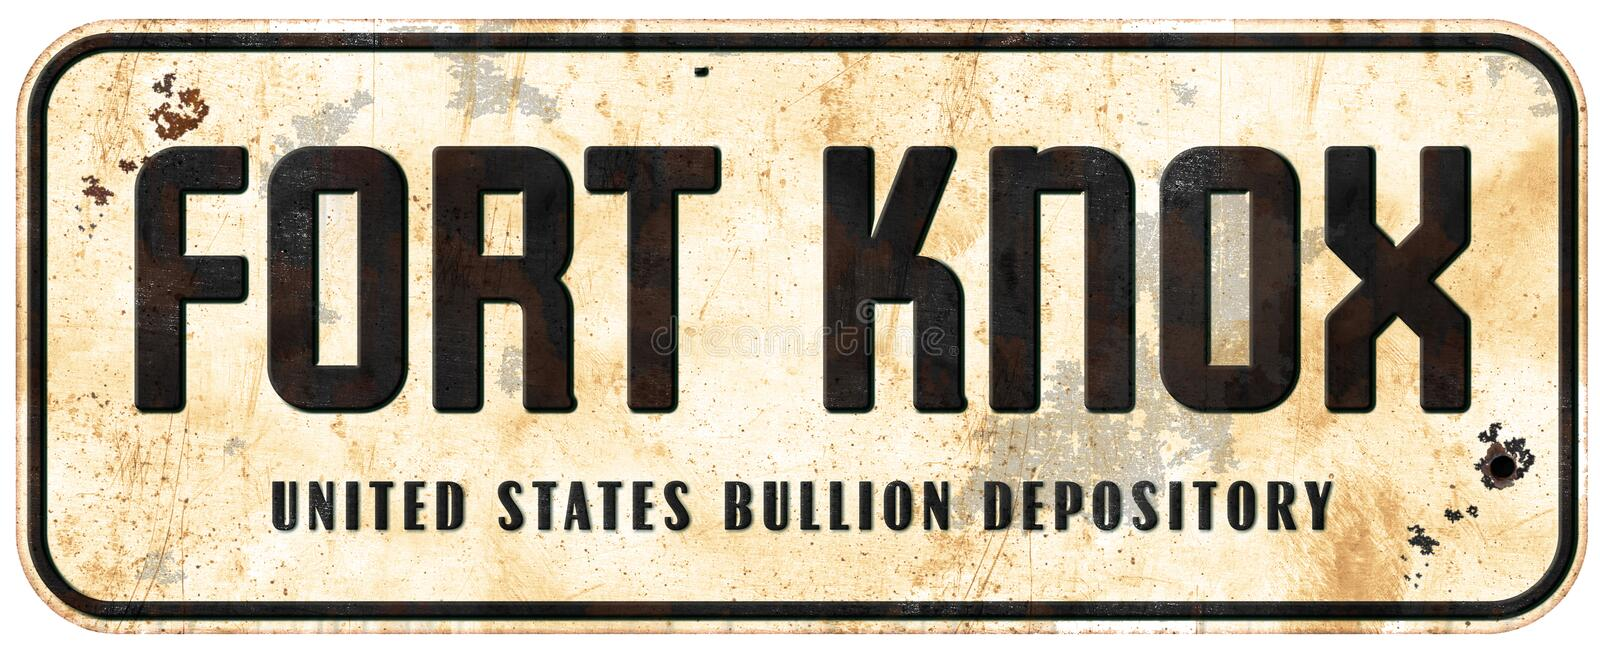 Fort Knox Sign photo stock